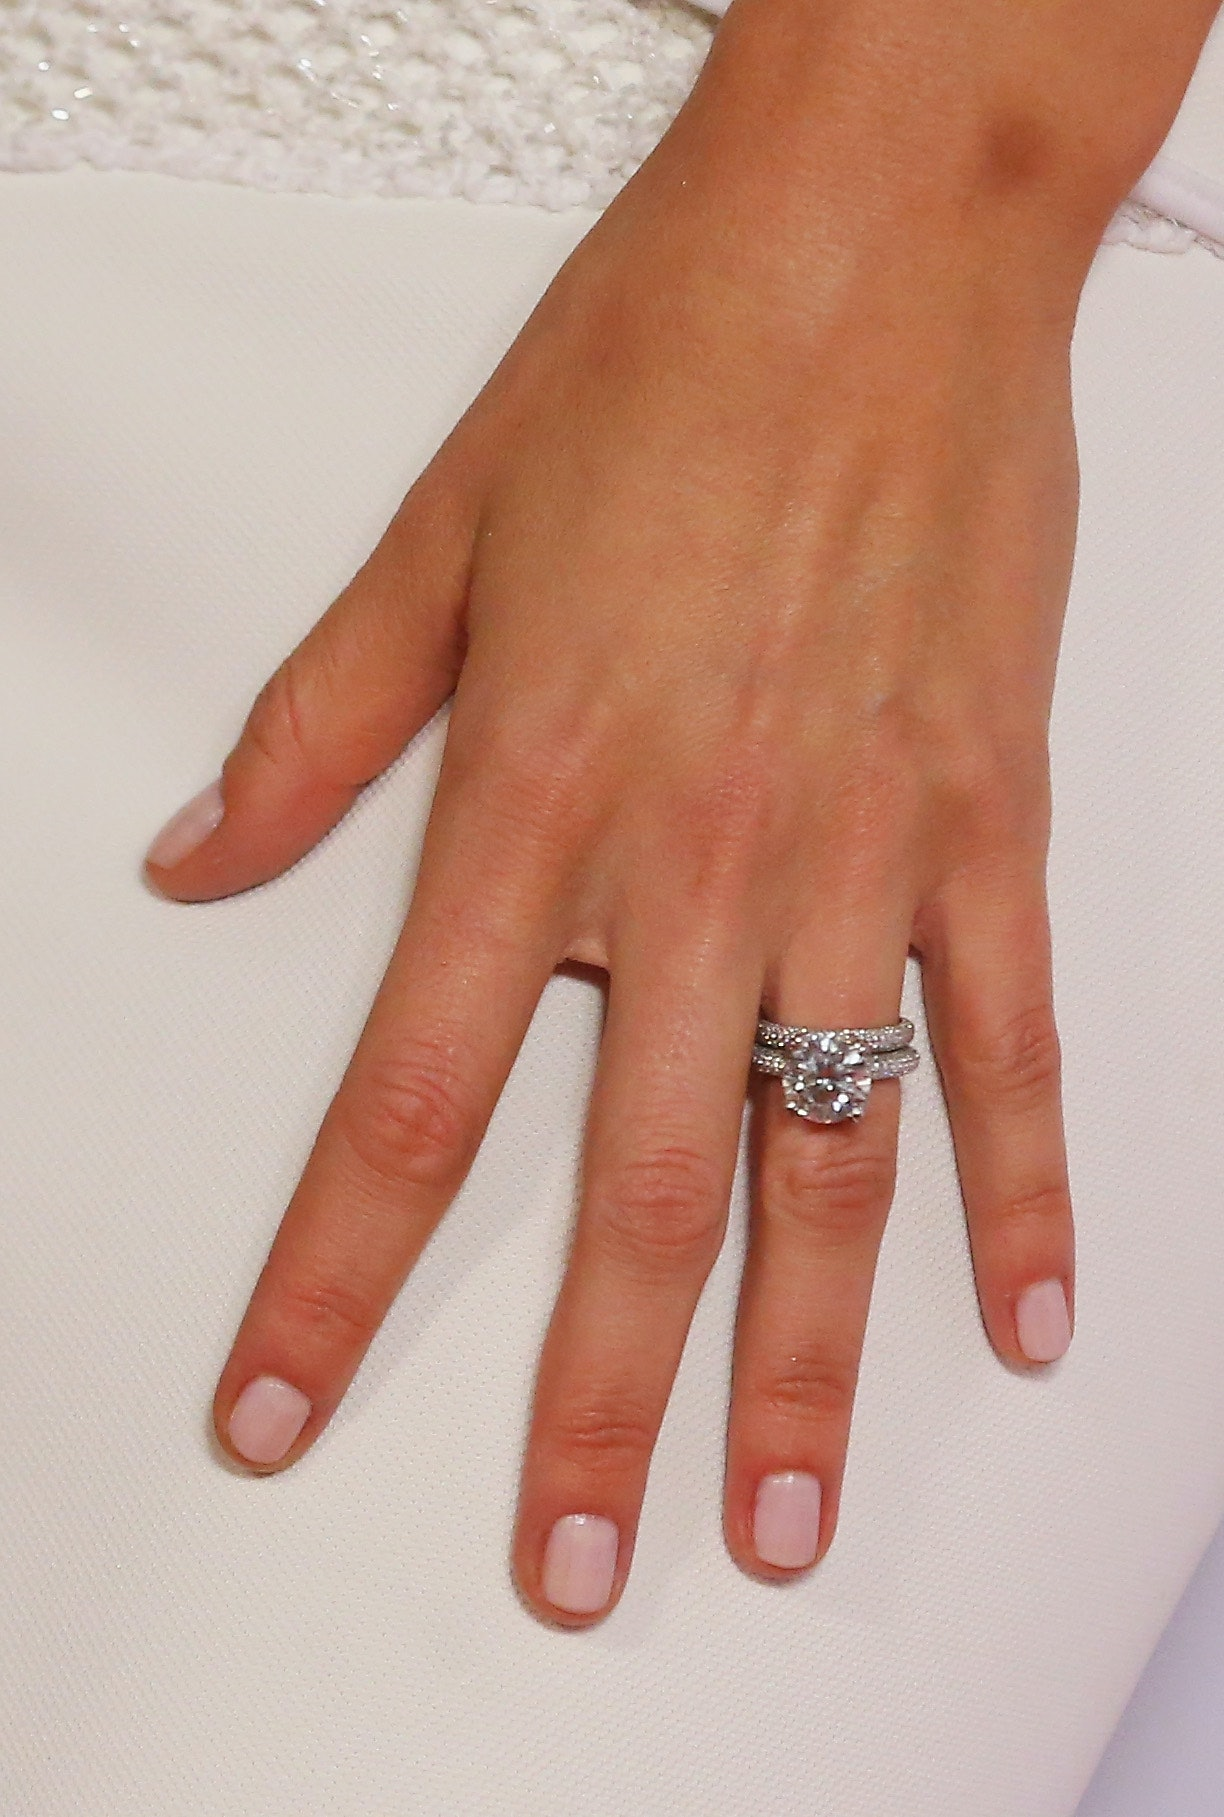 Why Diamond Engagement Rings Are a Total Scam